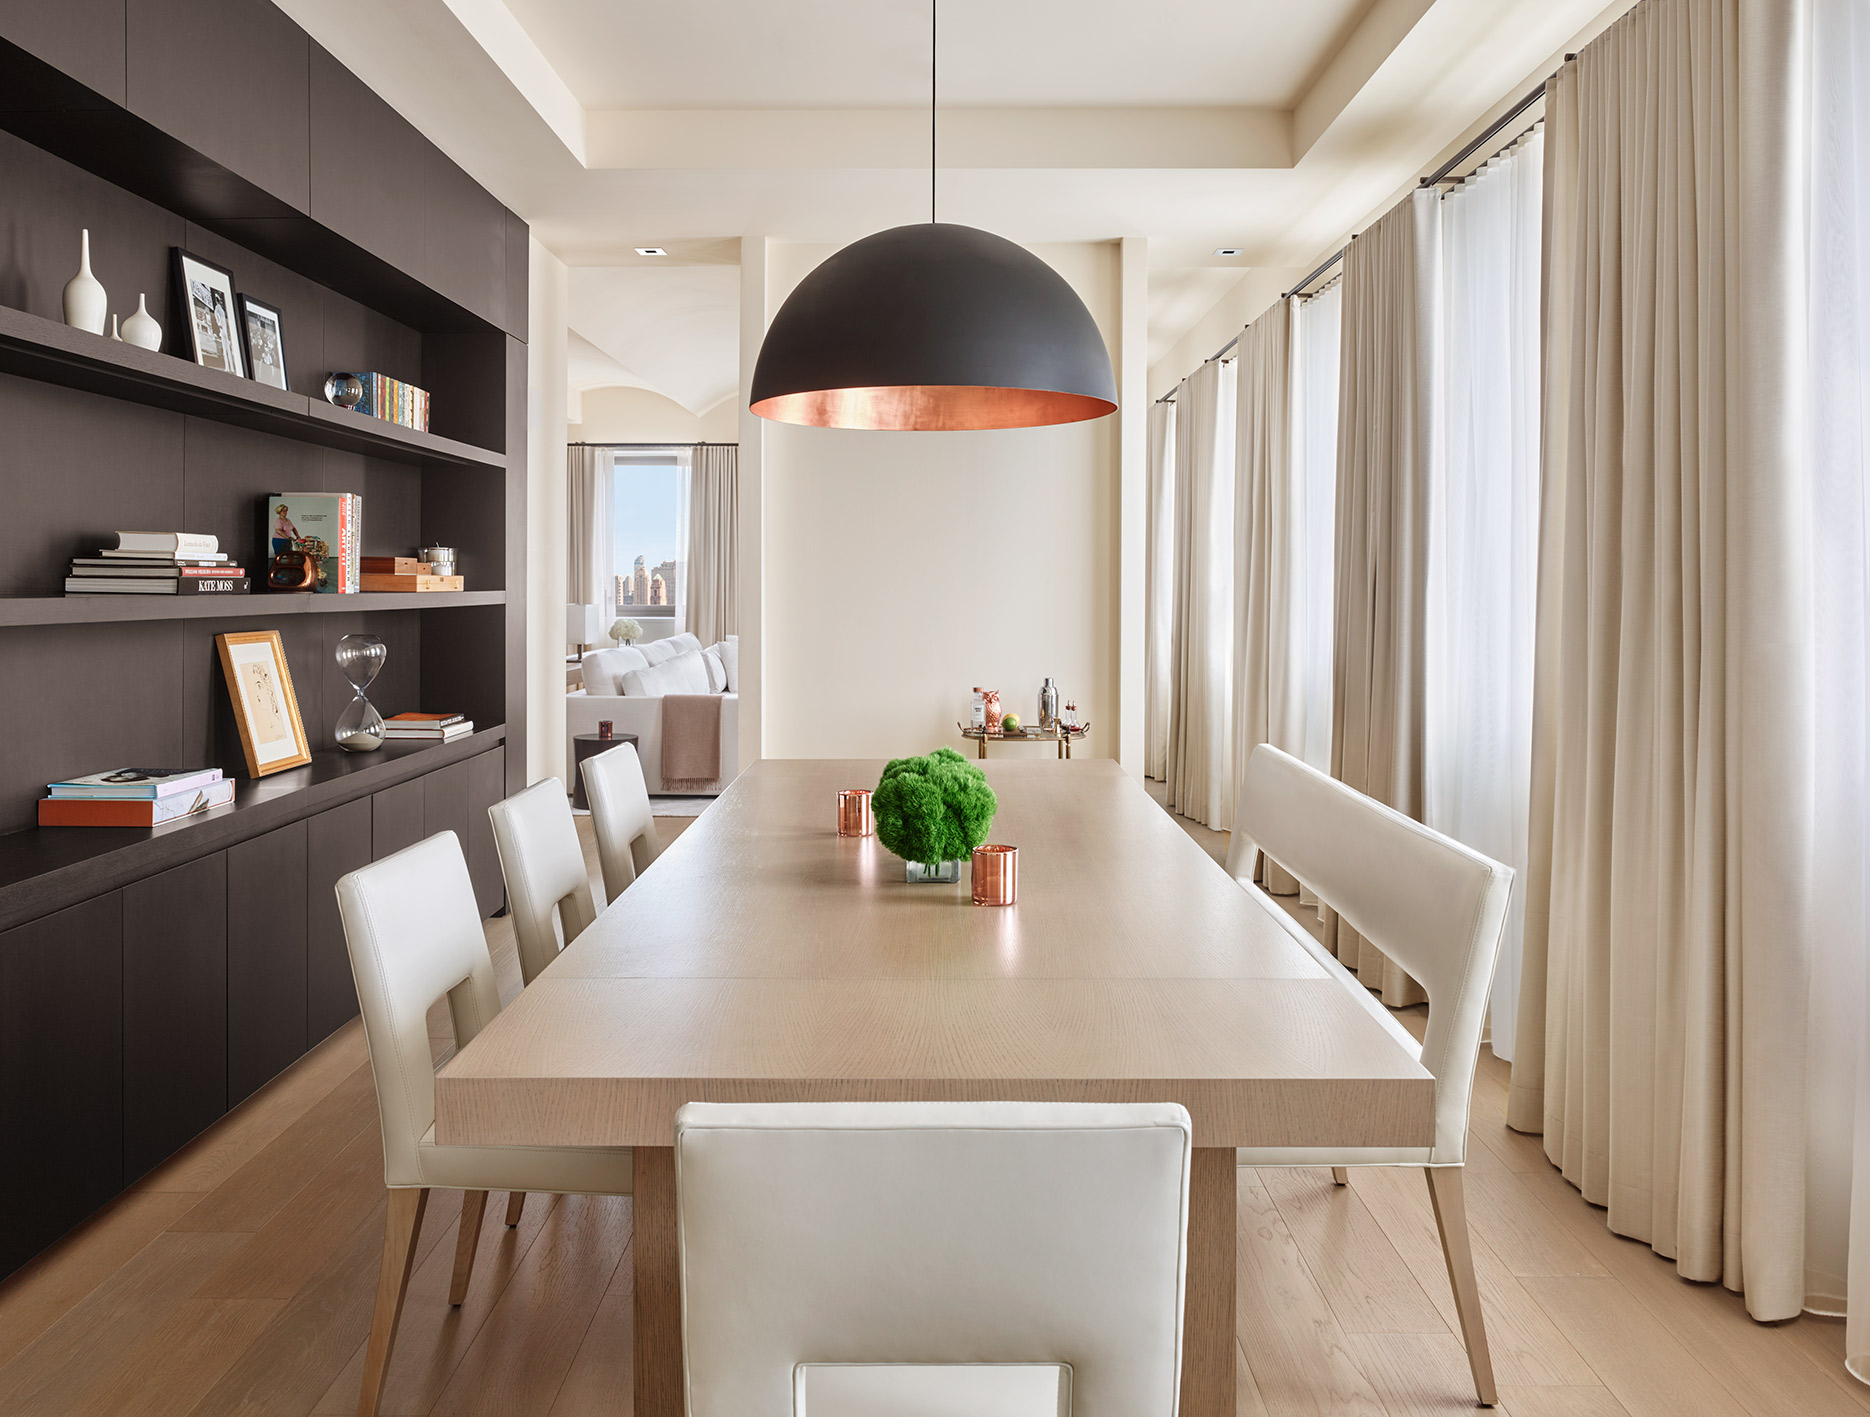 The-New-York-EDITION-Penthouse-Dining-1870x1400.jpg